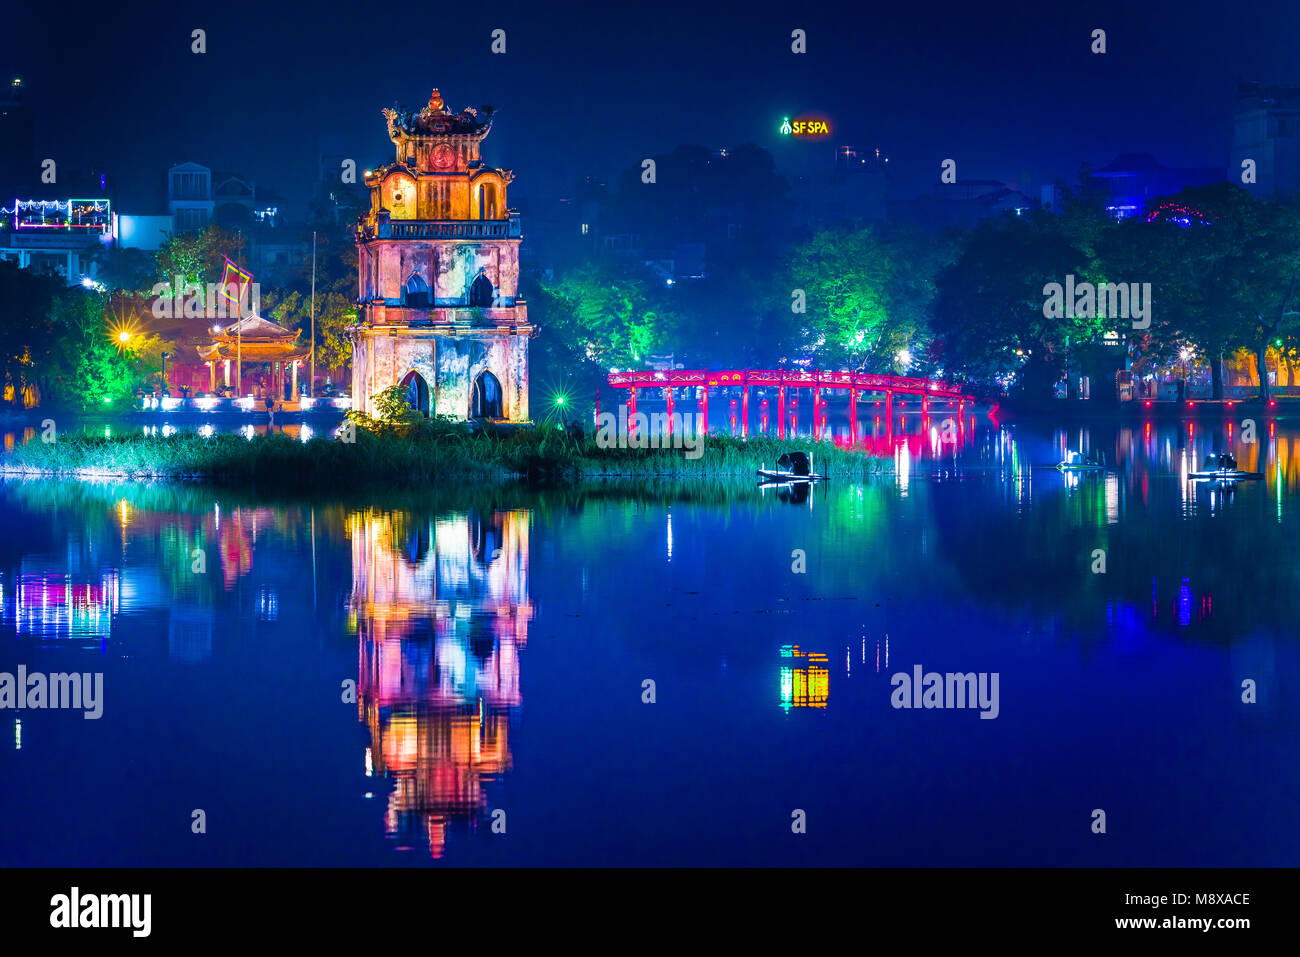 Hanoi Vietnam city, view at night of the old pavilion known as the Turtle (Tortoise) Tower sited in Hoan Kiem Lake - Stock Image